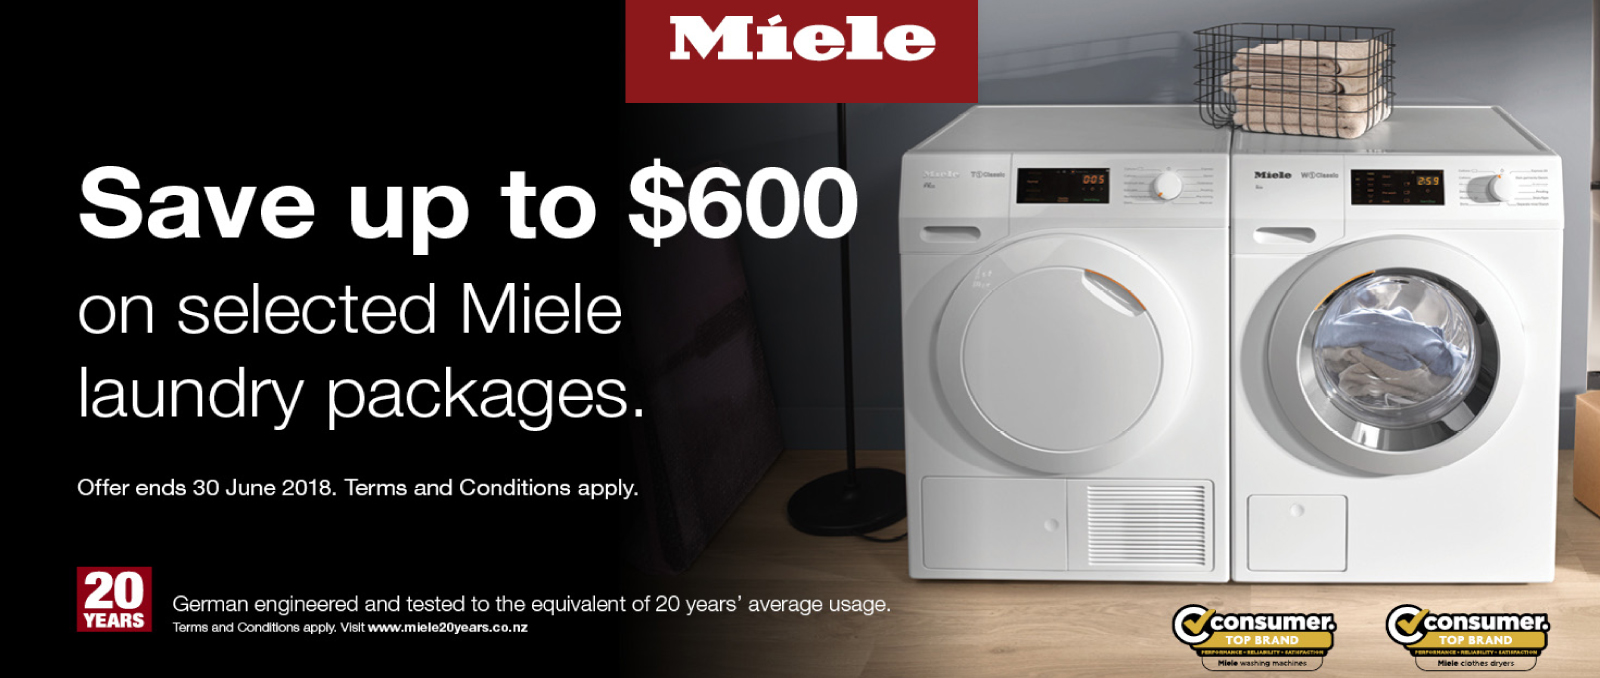 Miele May Specials Slider 2